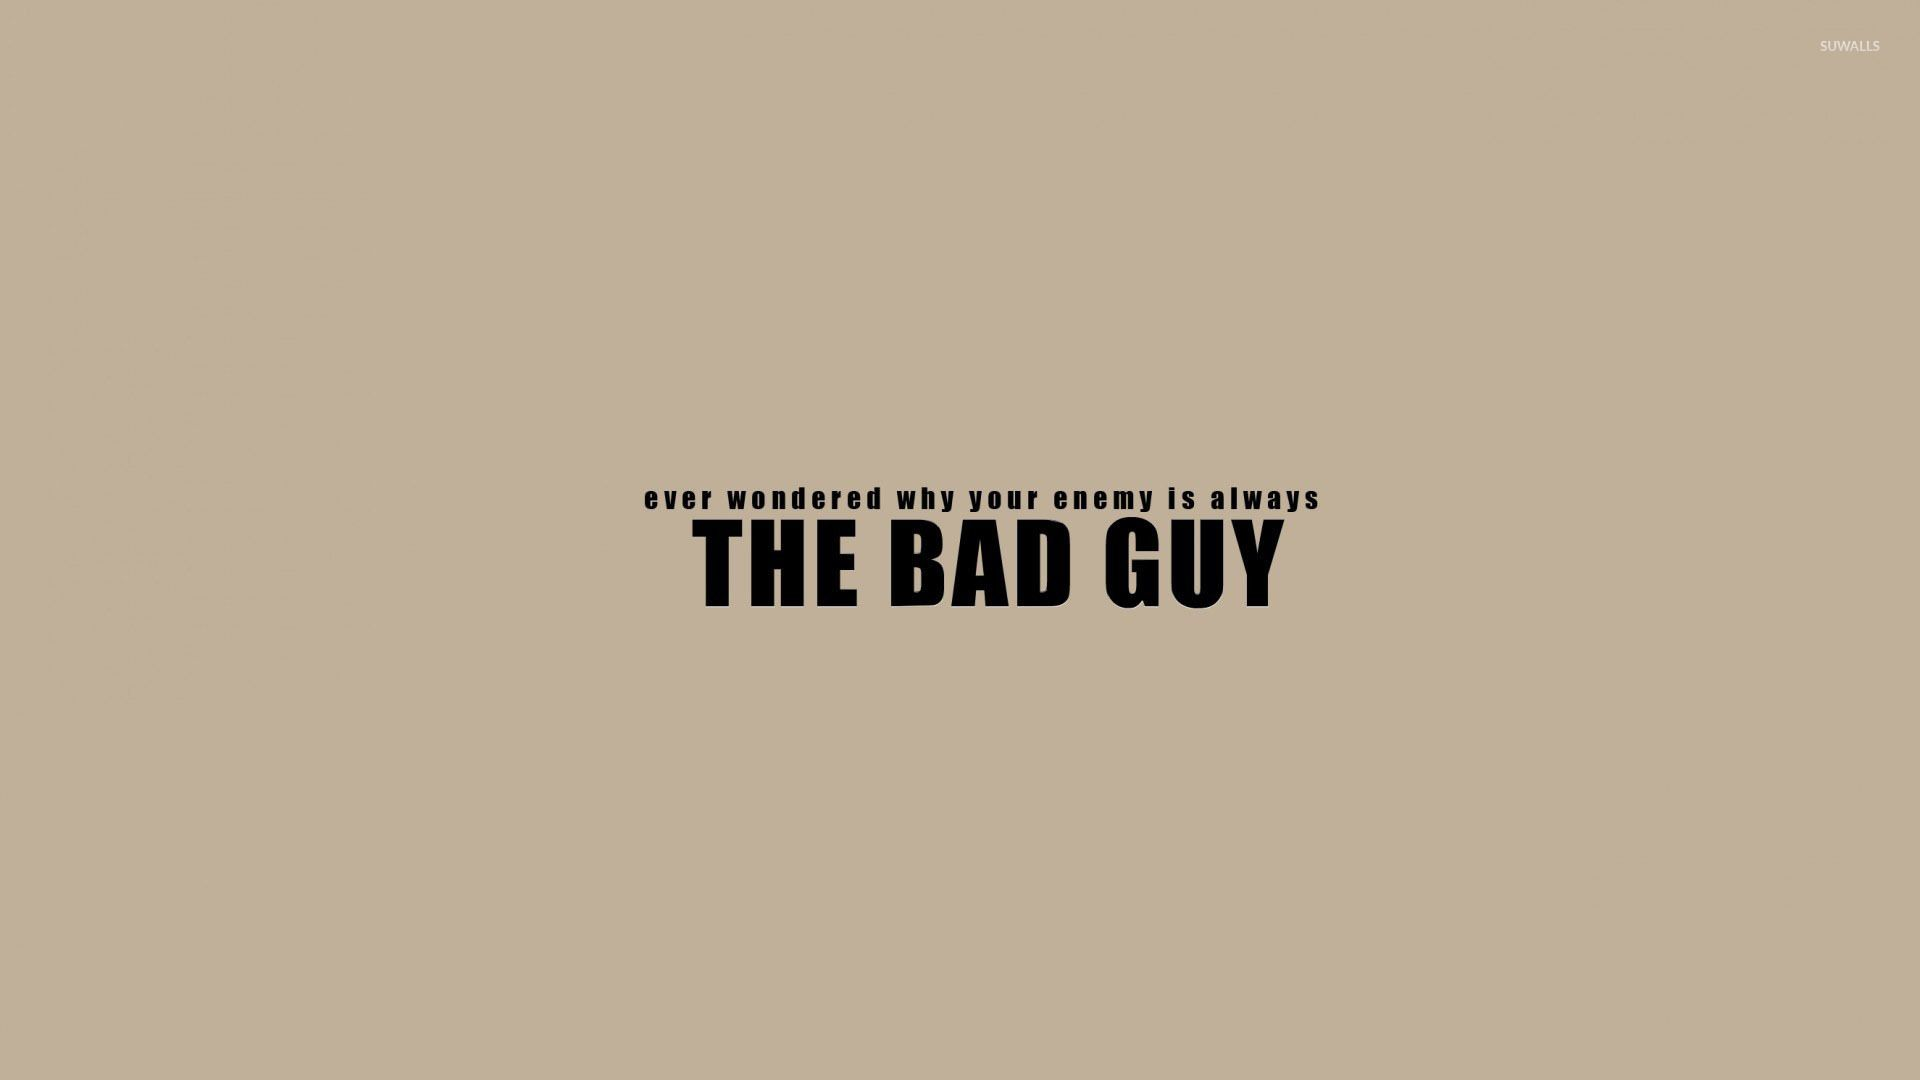 1920x1080 The enemy is always the bad guy wallpaper - Funny wallpapers - #49704